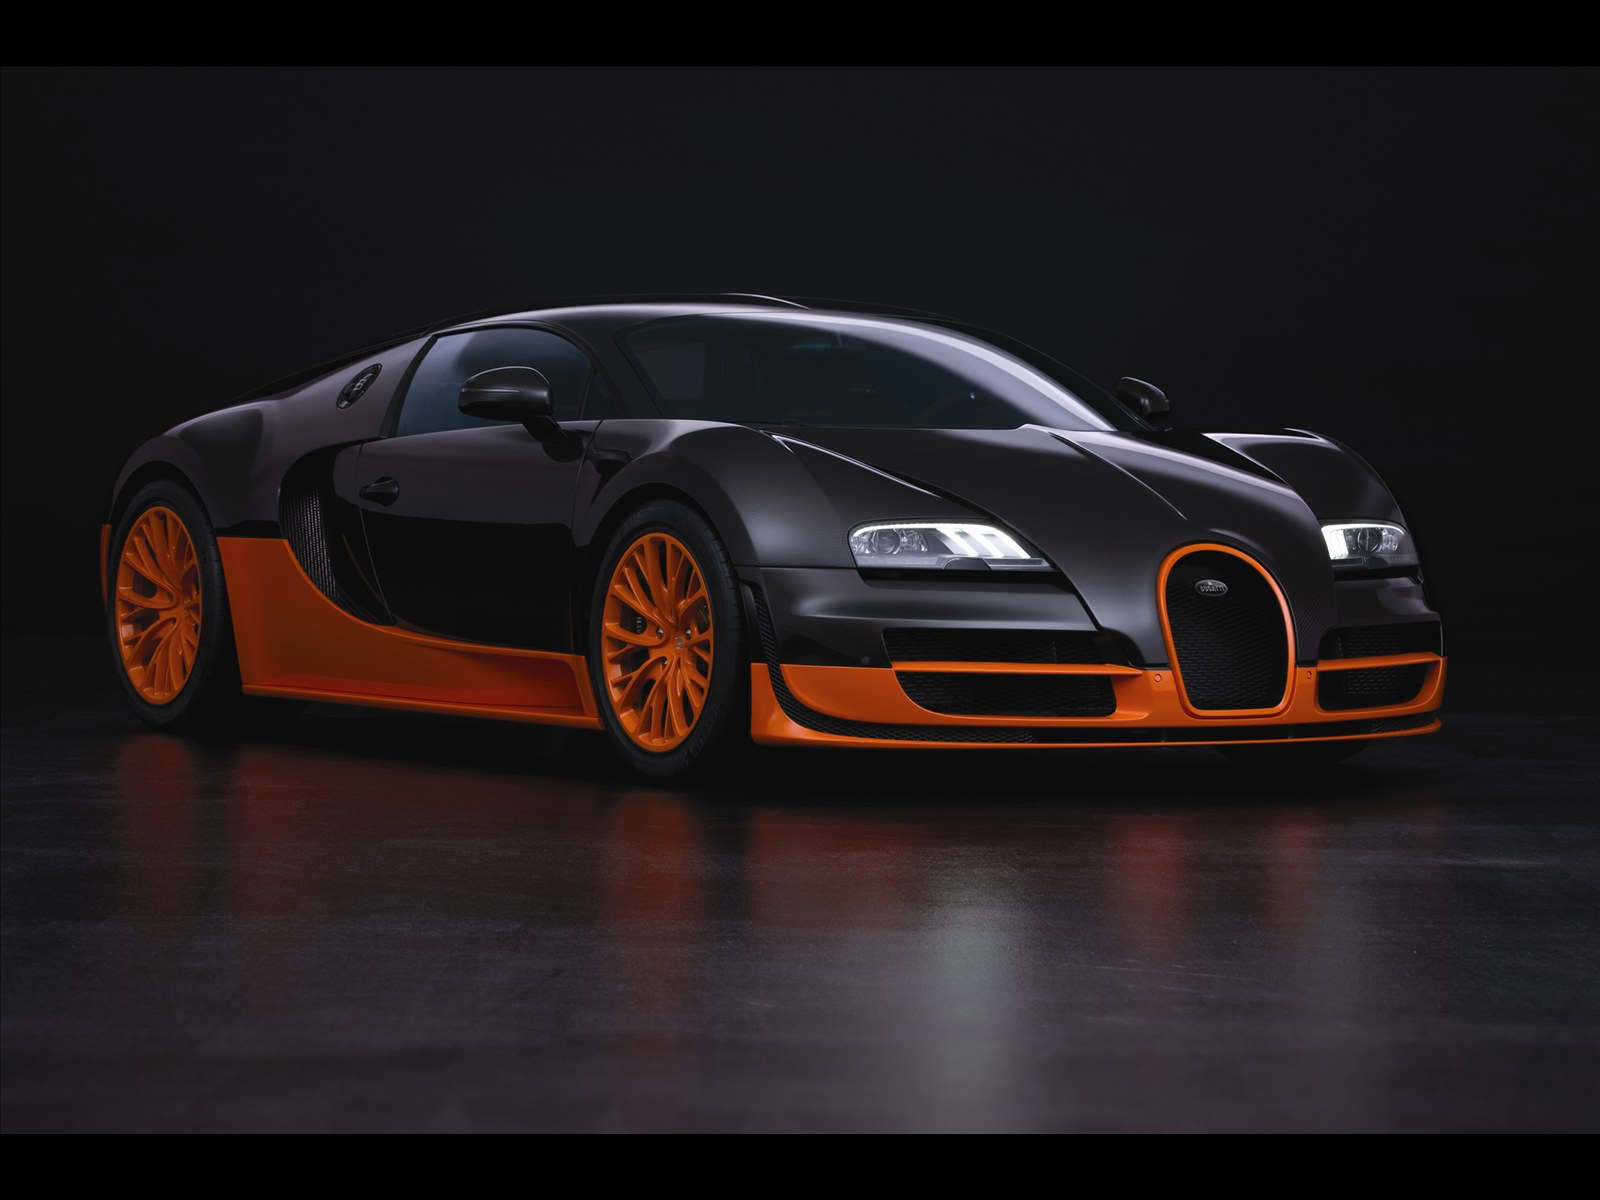 Bugatti Veyron Super Sport by FAB Design Sketch